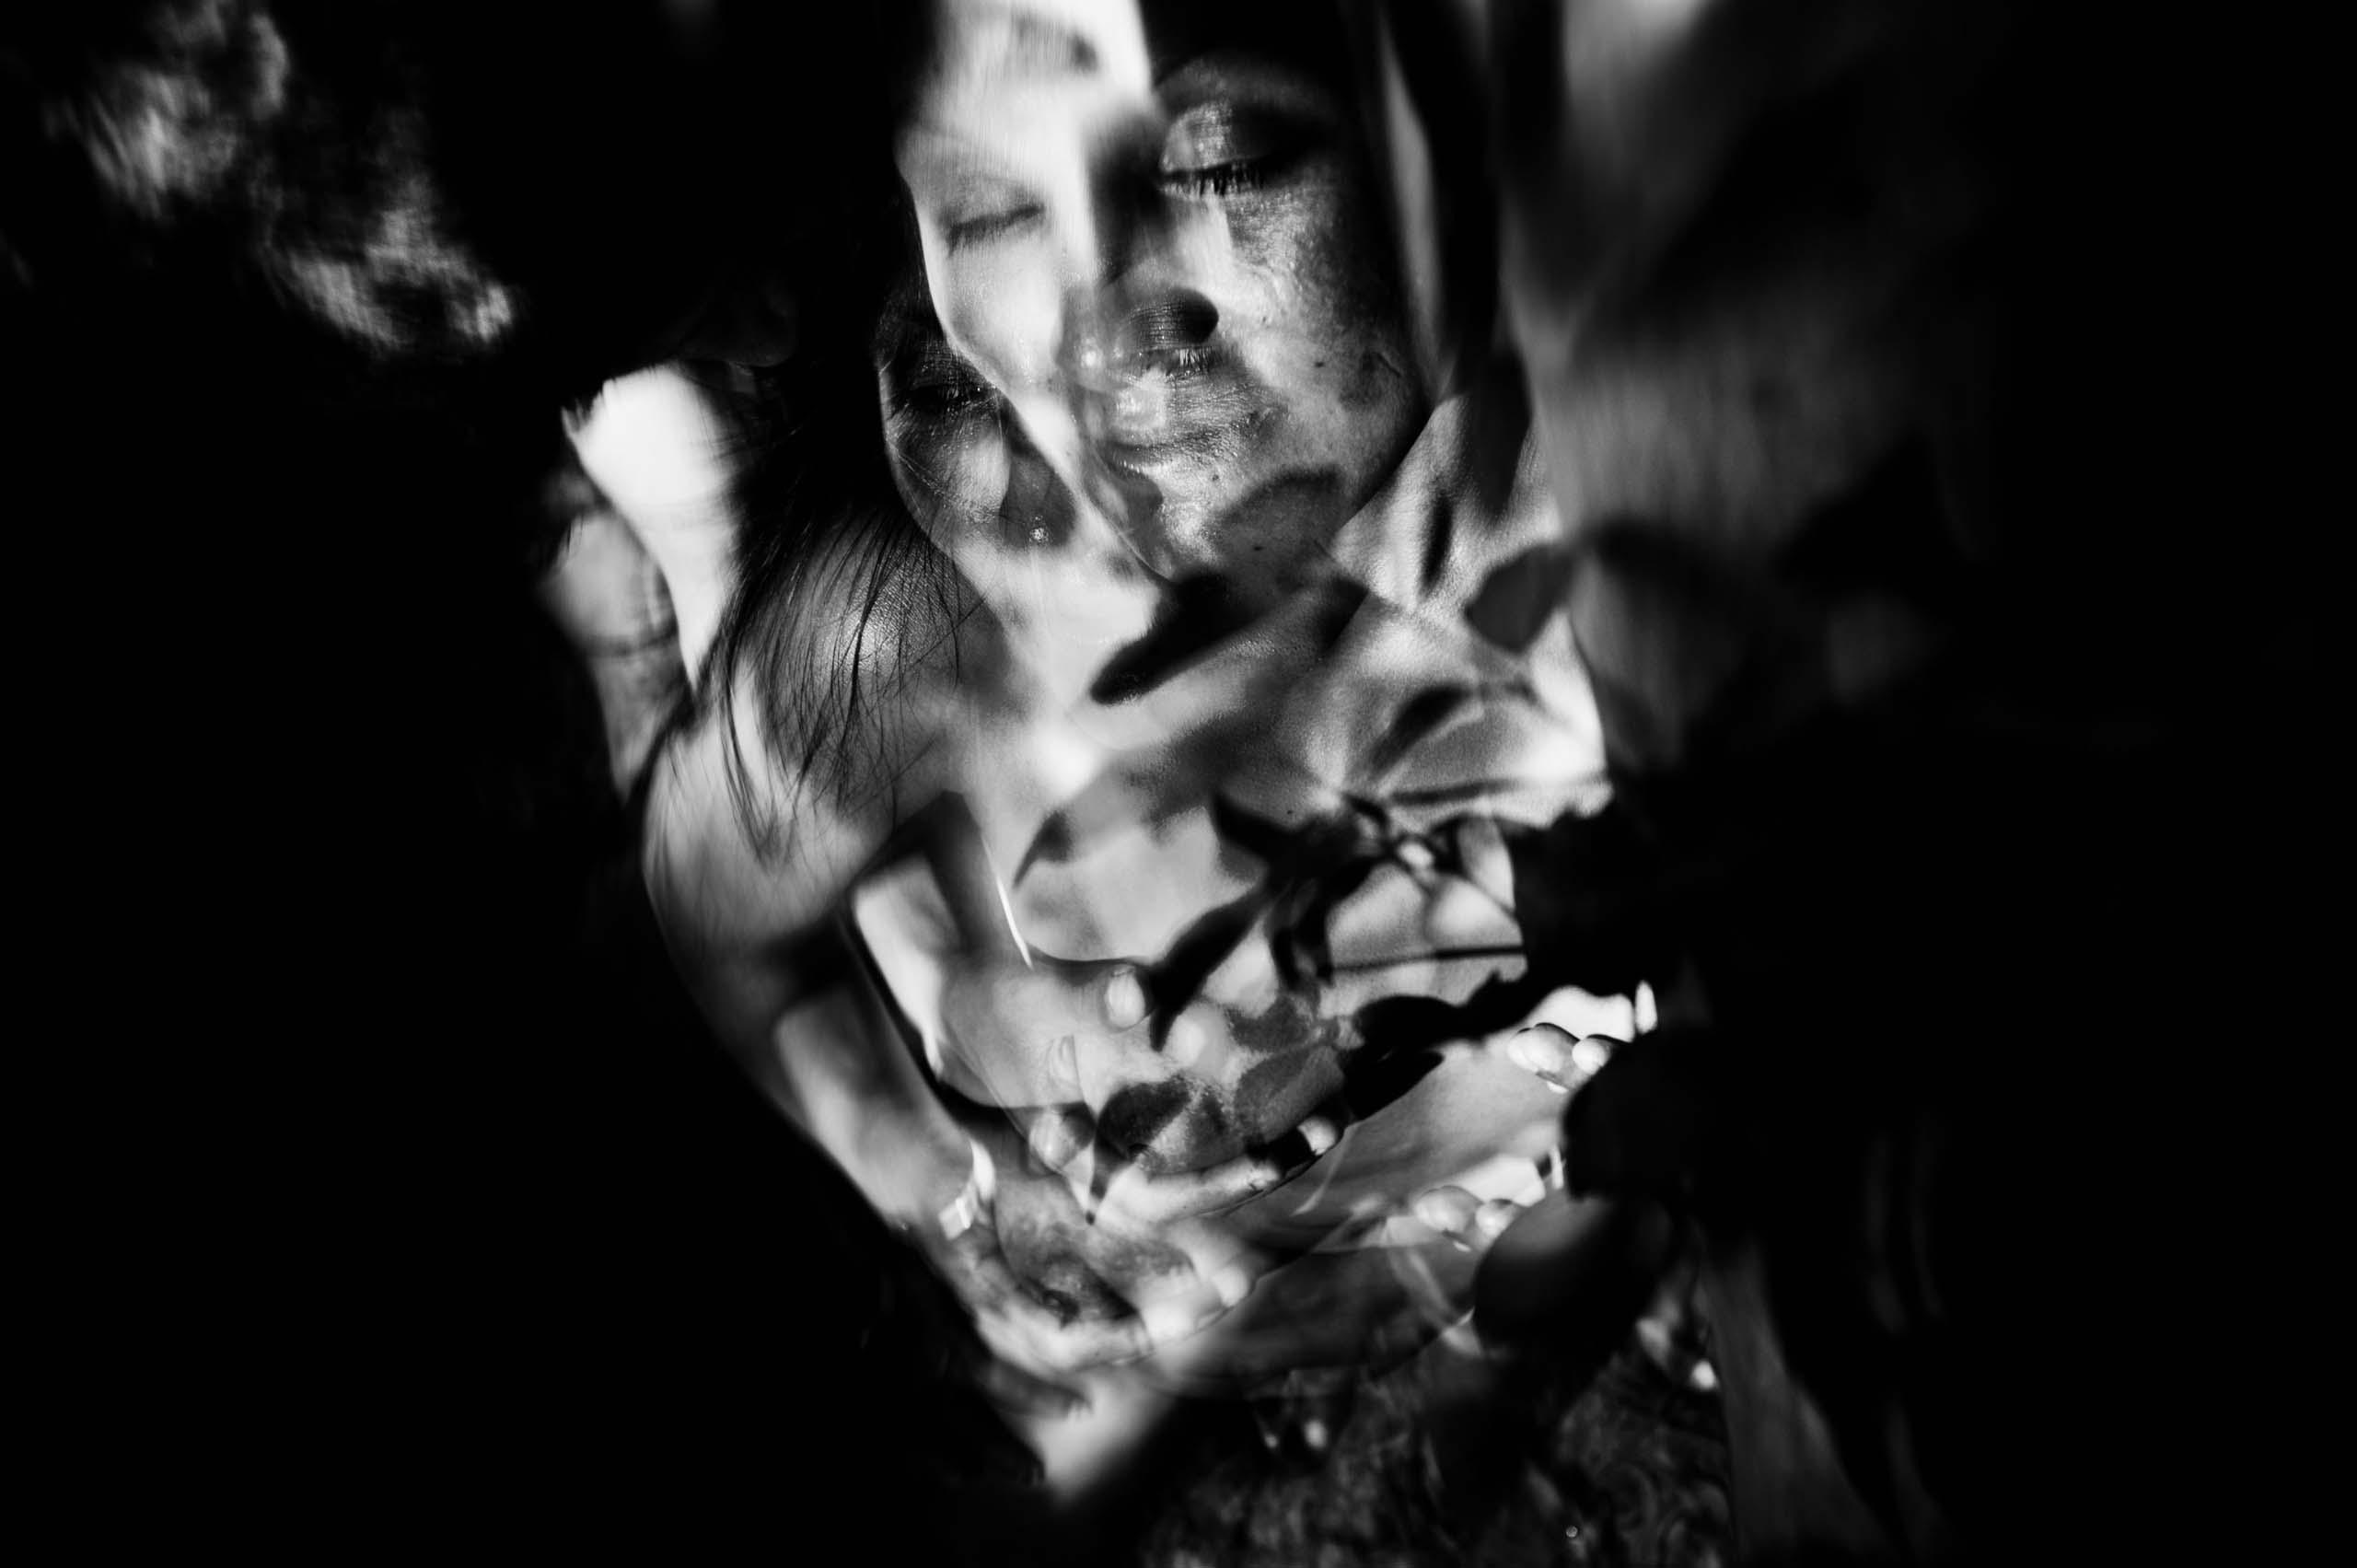 Untitled from the series The City Blurred